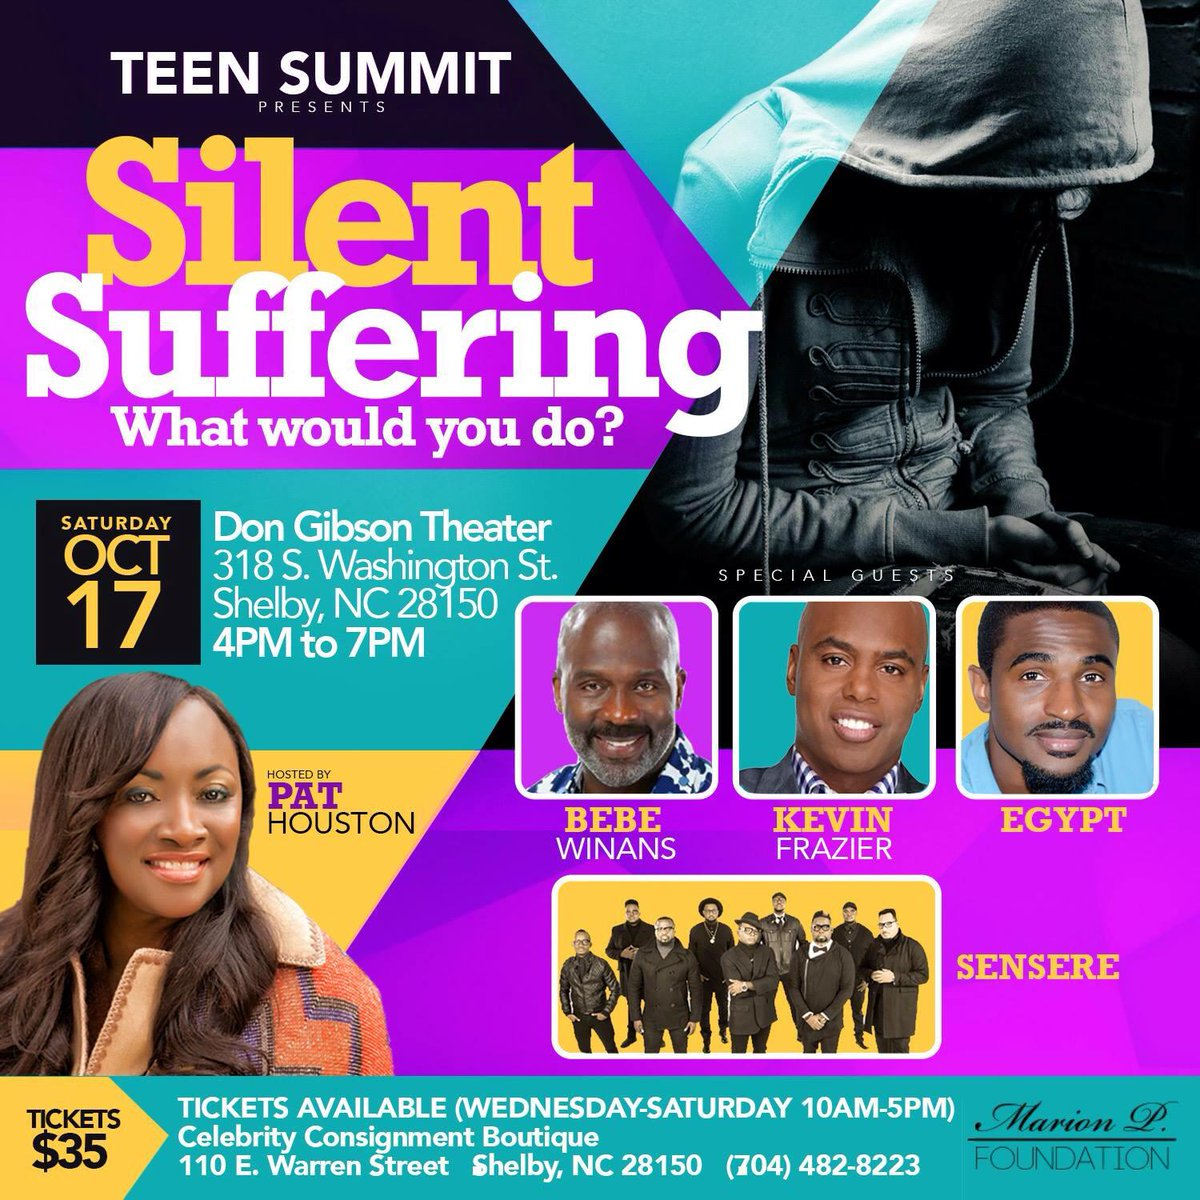 Teen Summit persents Silent Suffering ft. Bebe Winans, Kevin Frazier, Egypt, and Sensere